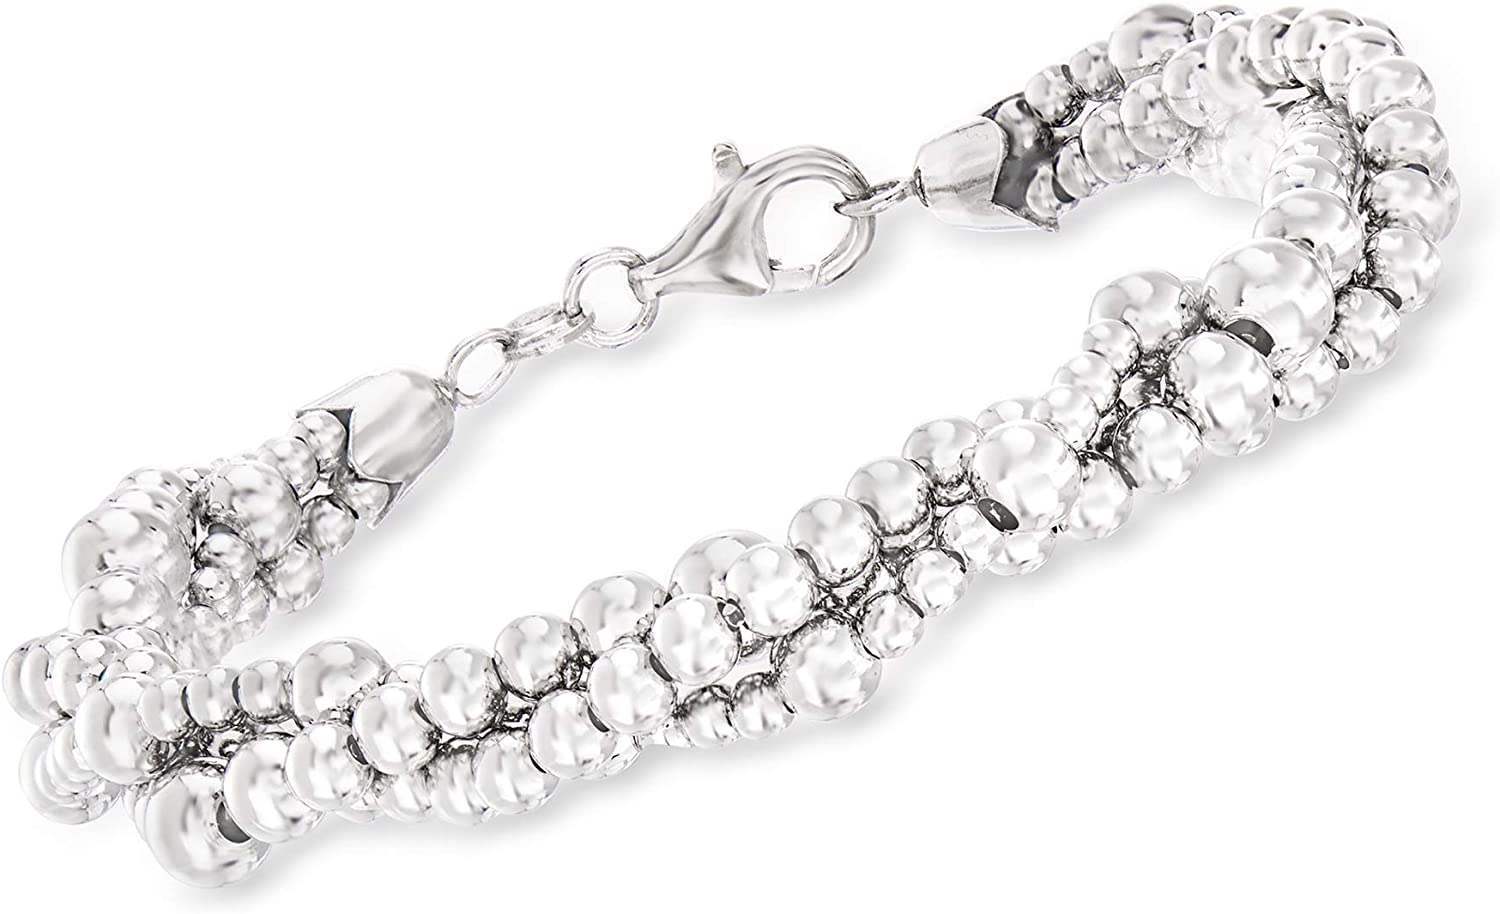 Ross-Simons Italian Sterling Silver Twisted Multi-Bead Bracelet For Women 7.5, 8.5 Inch 925 Made in Italy